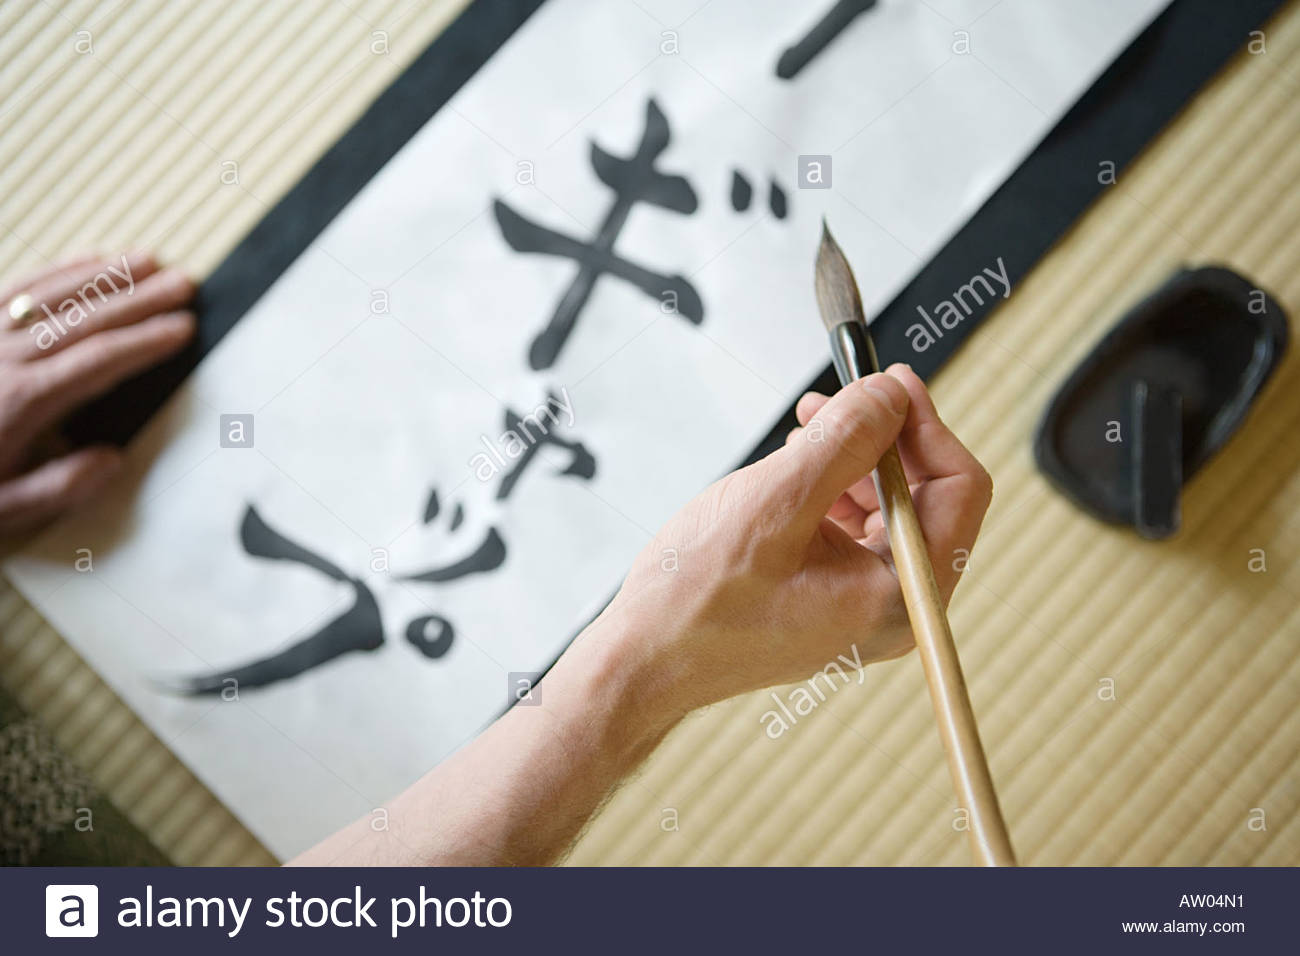 Man writing in japanese script - Stock Image